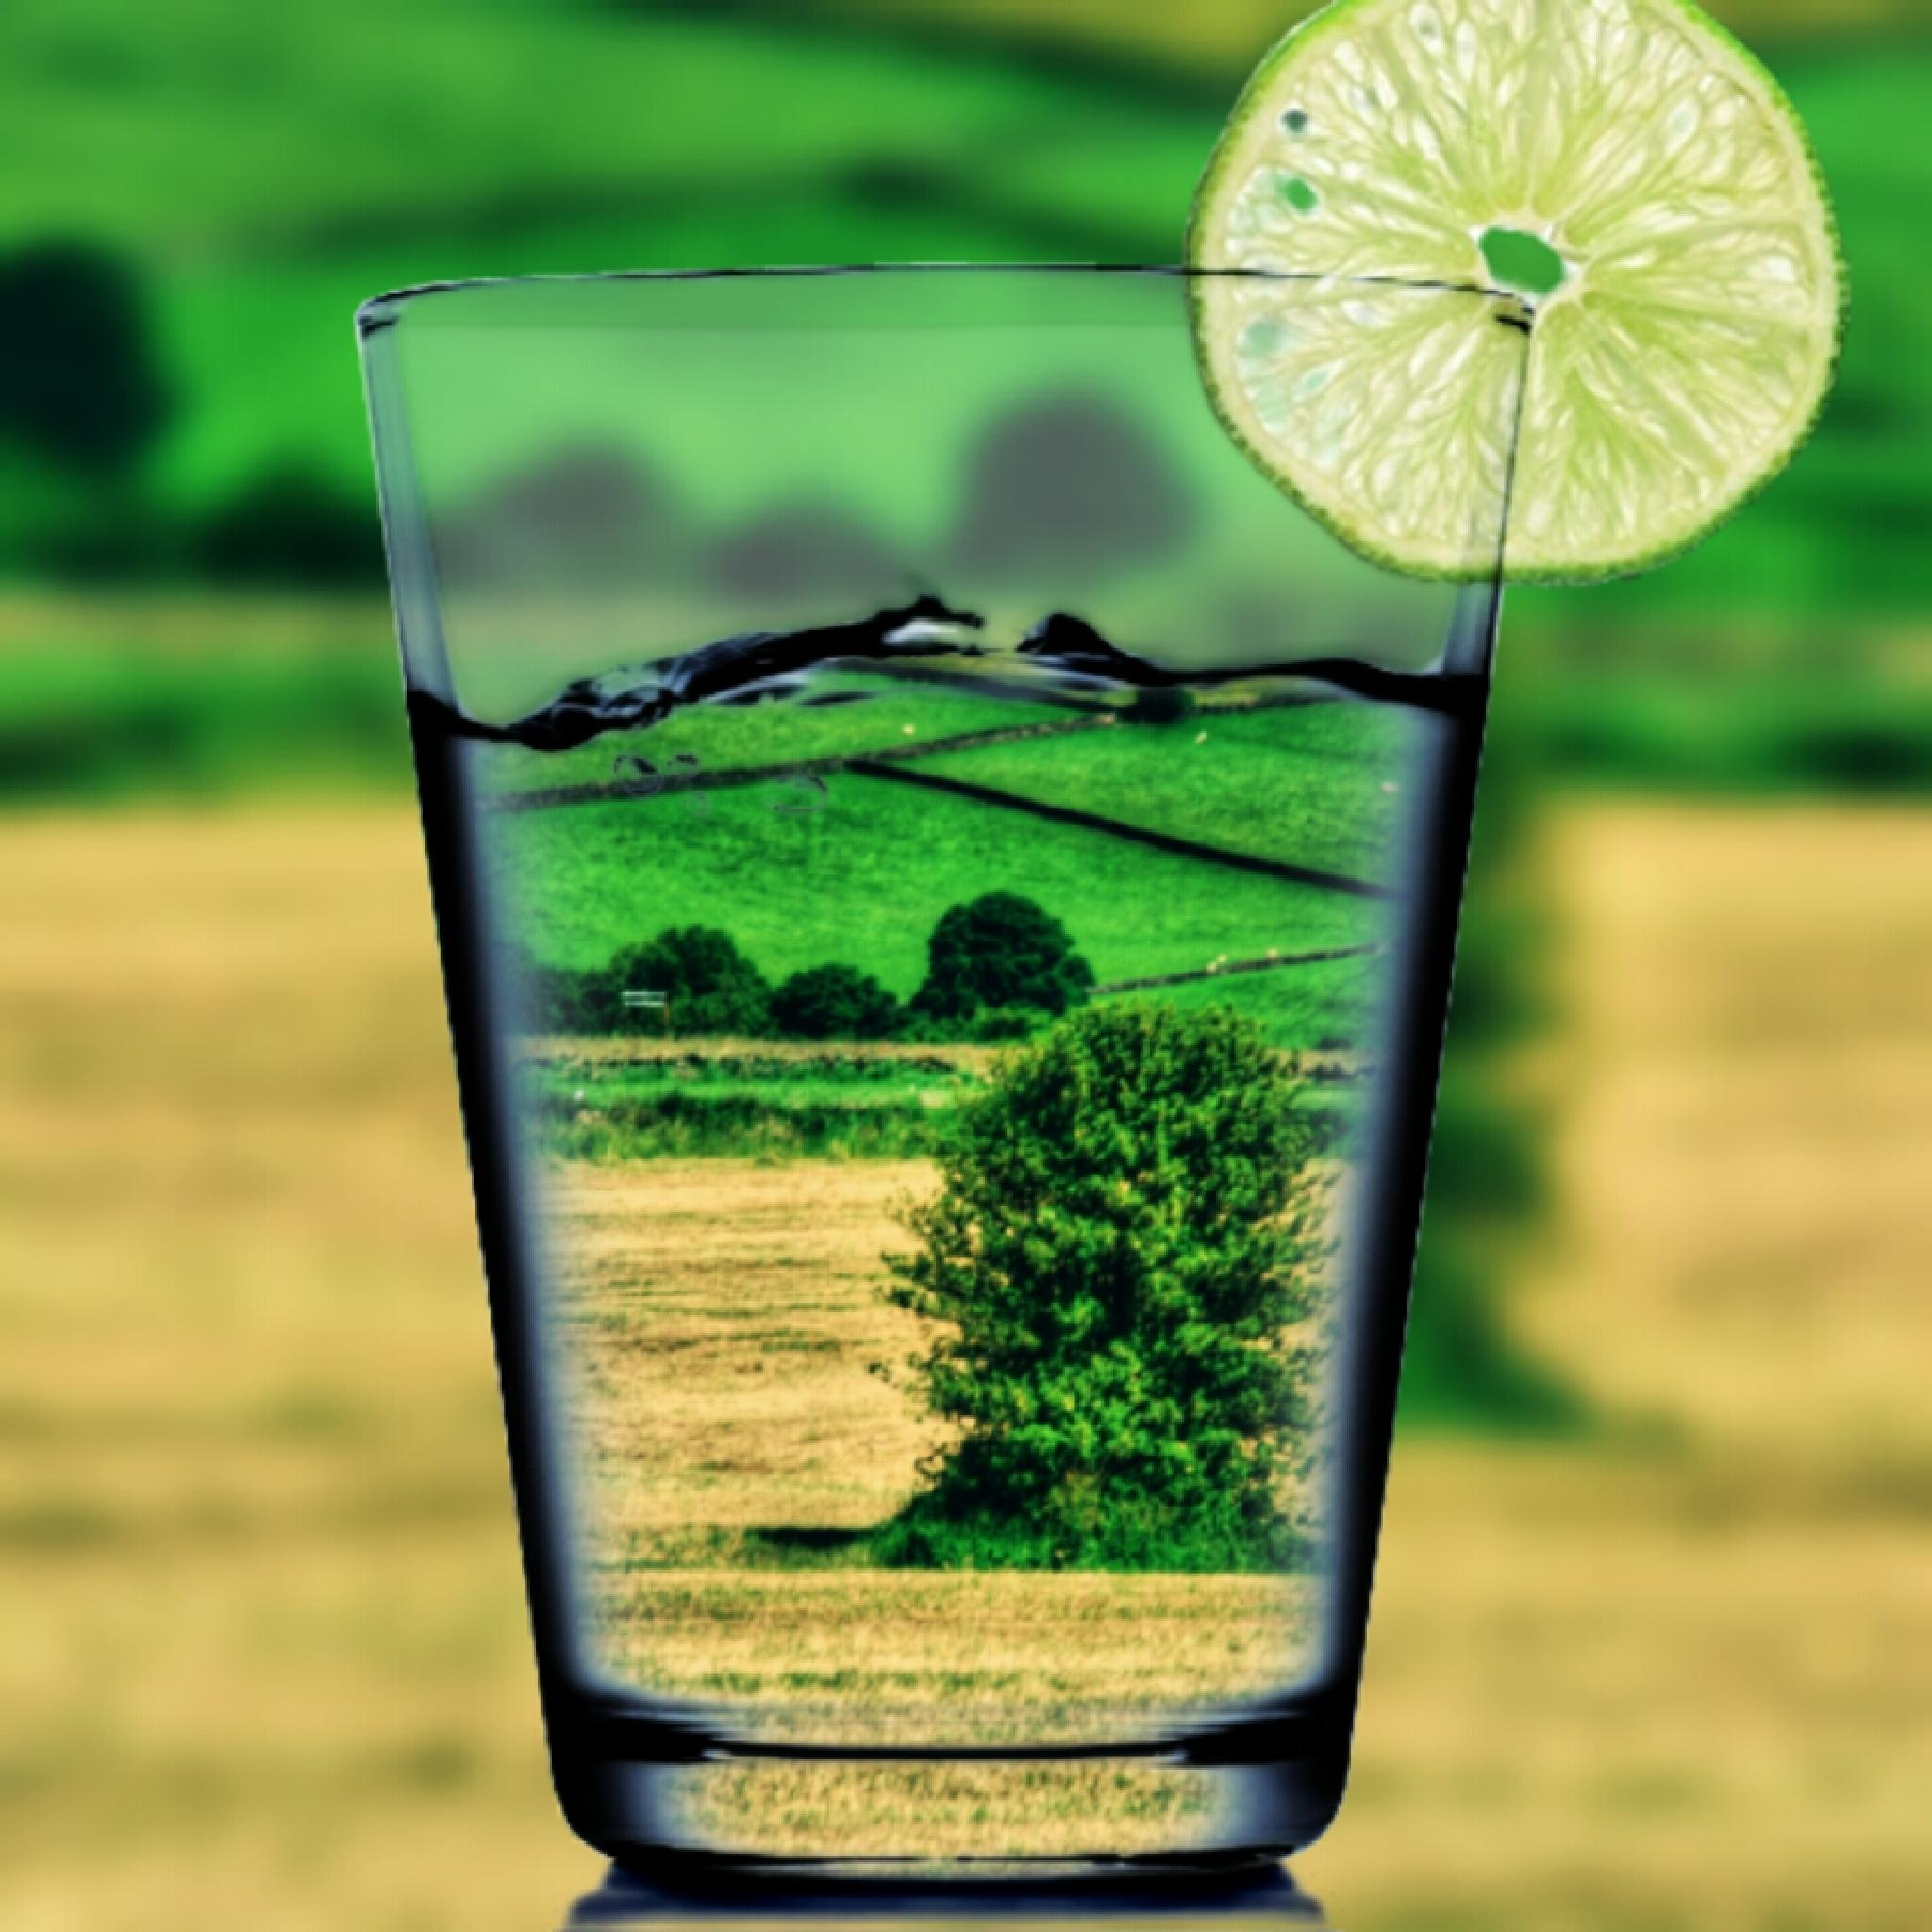 view at worral sheffield summer afternoon through a glass by Stuart Robertshaw Photography